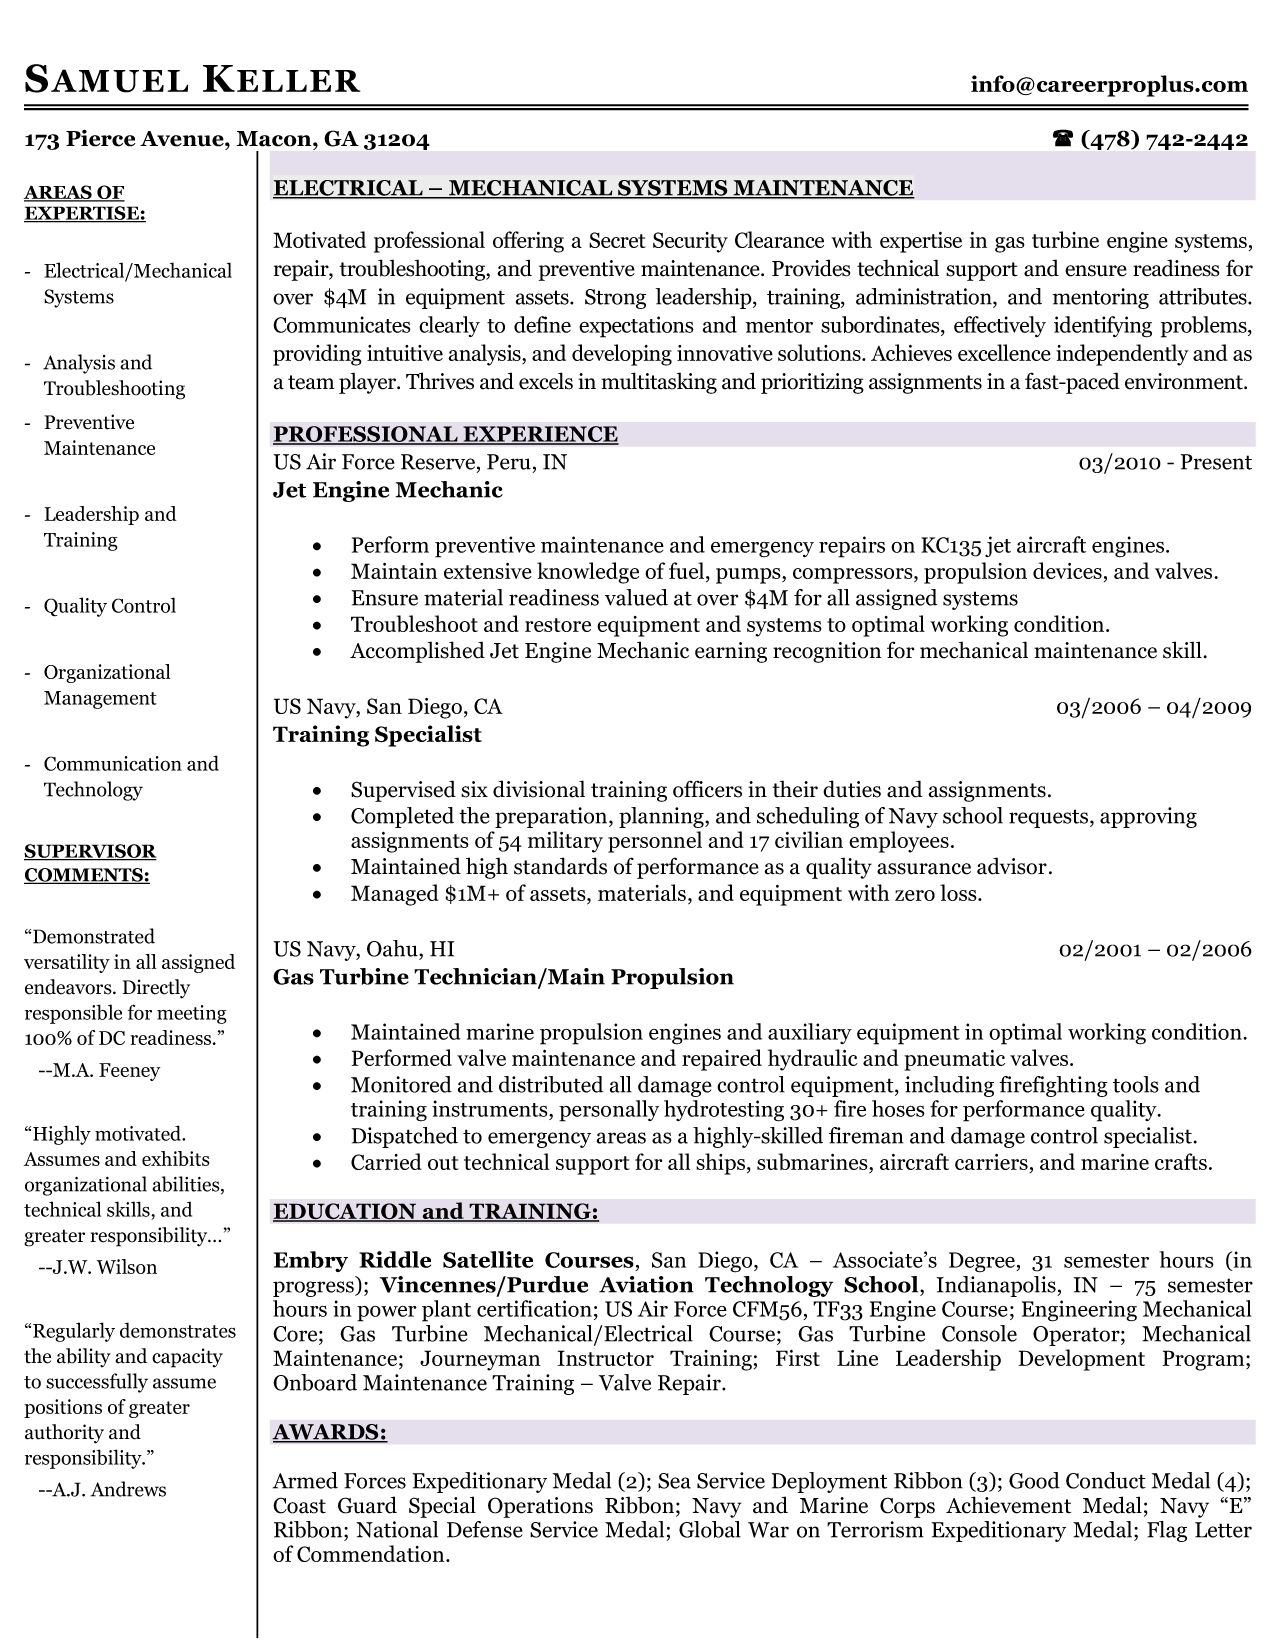 Military Resume Writers Best Military Resume Samples & Examples In 2014  Mrw  Resumes .